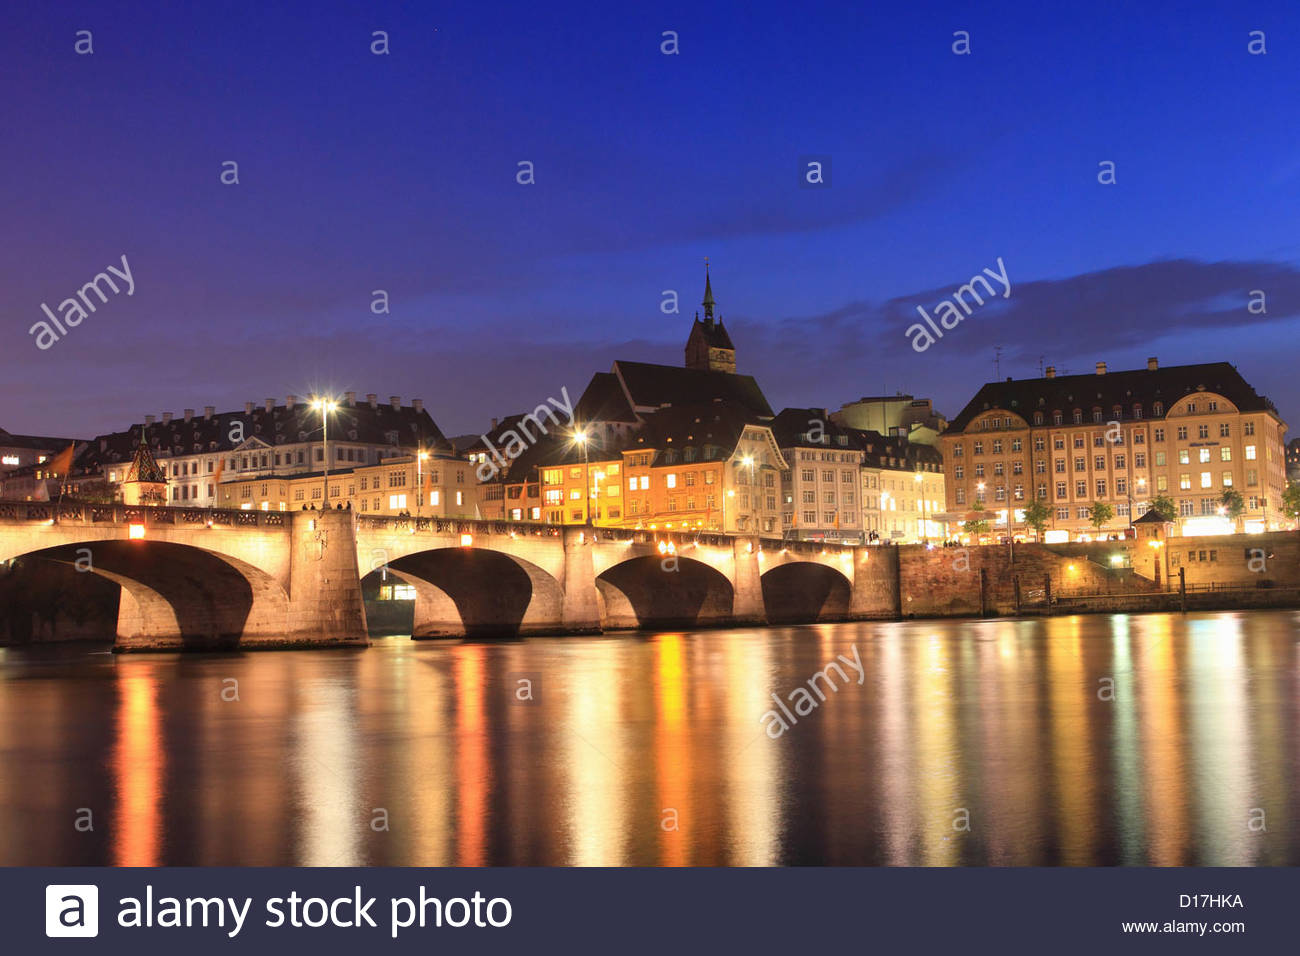 City lights reflected in river - Stock Image